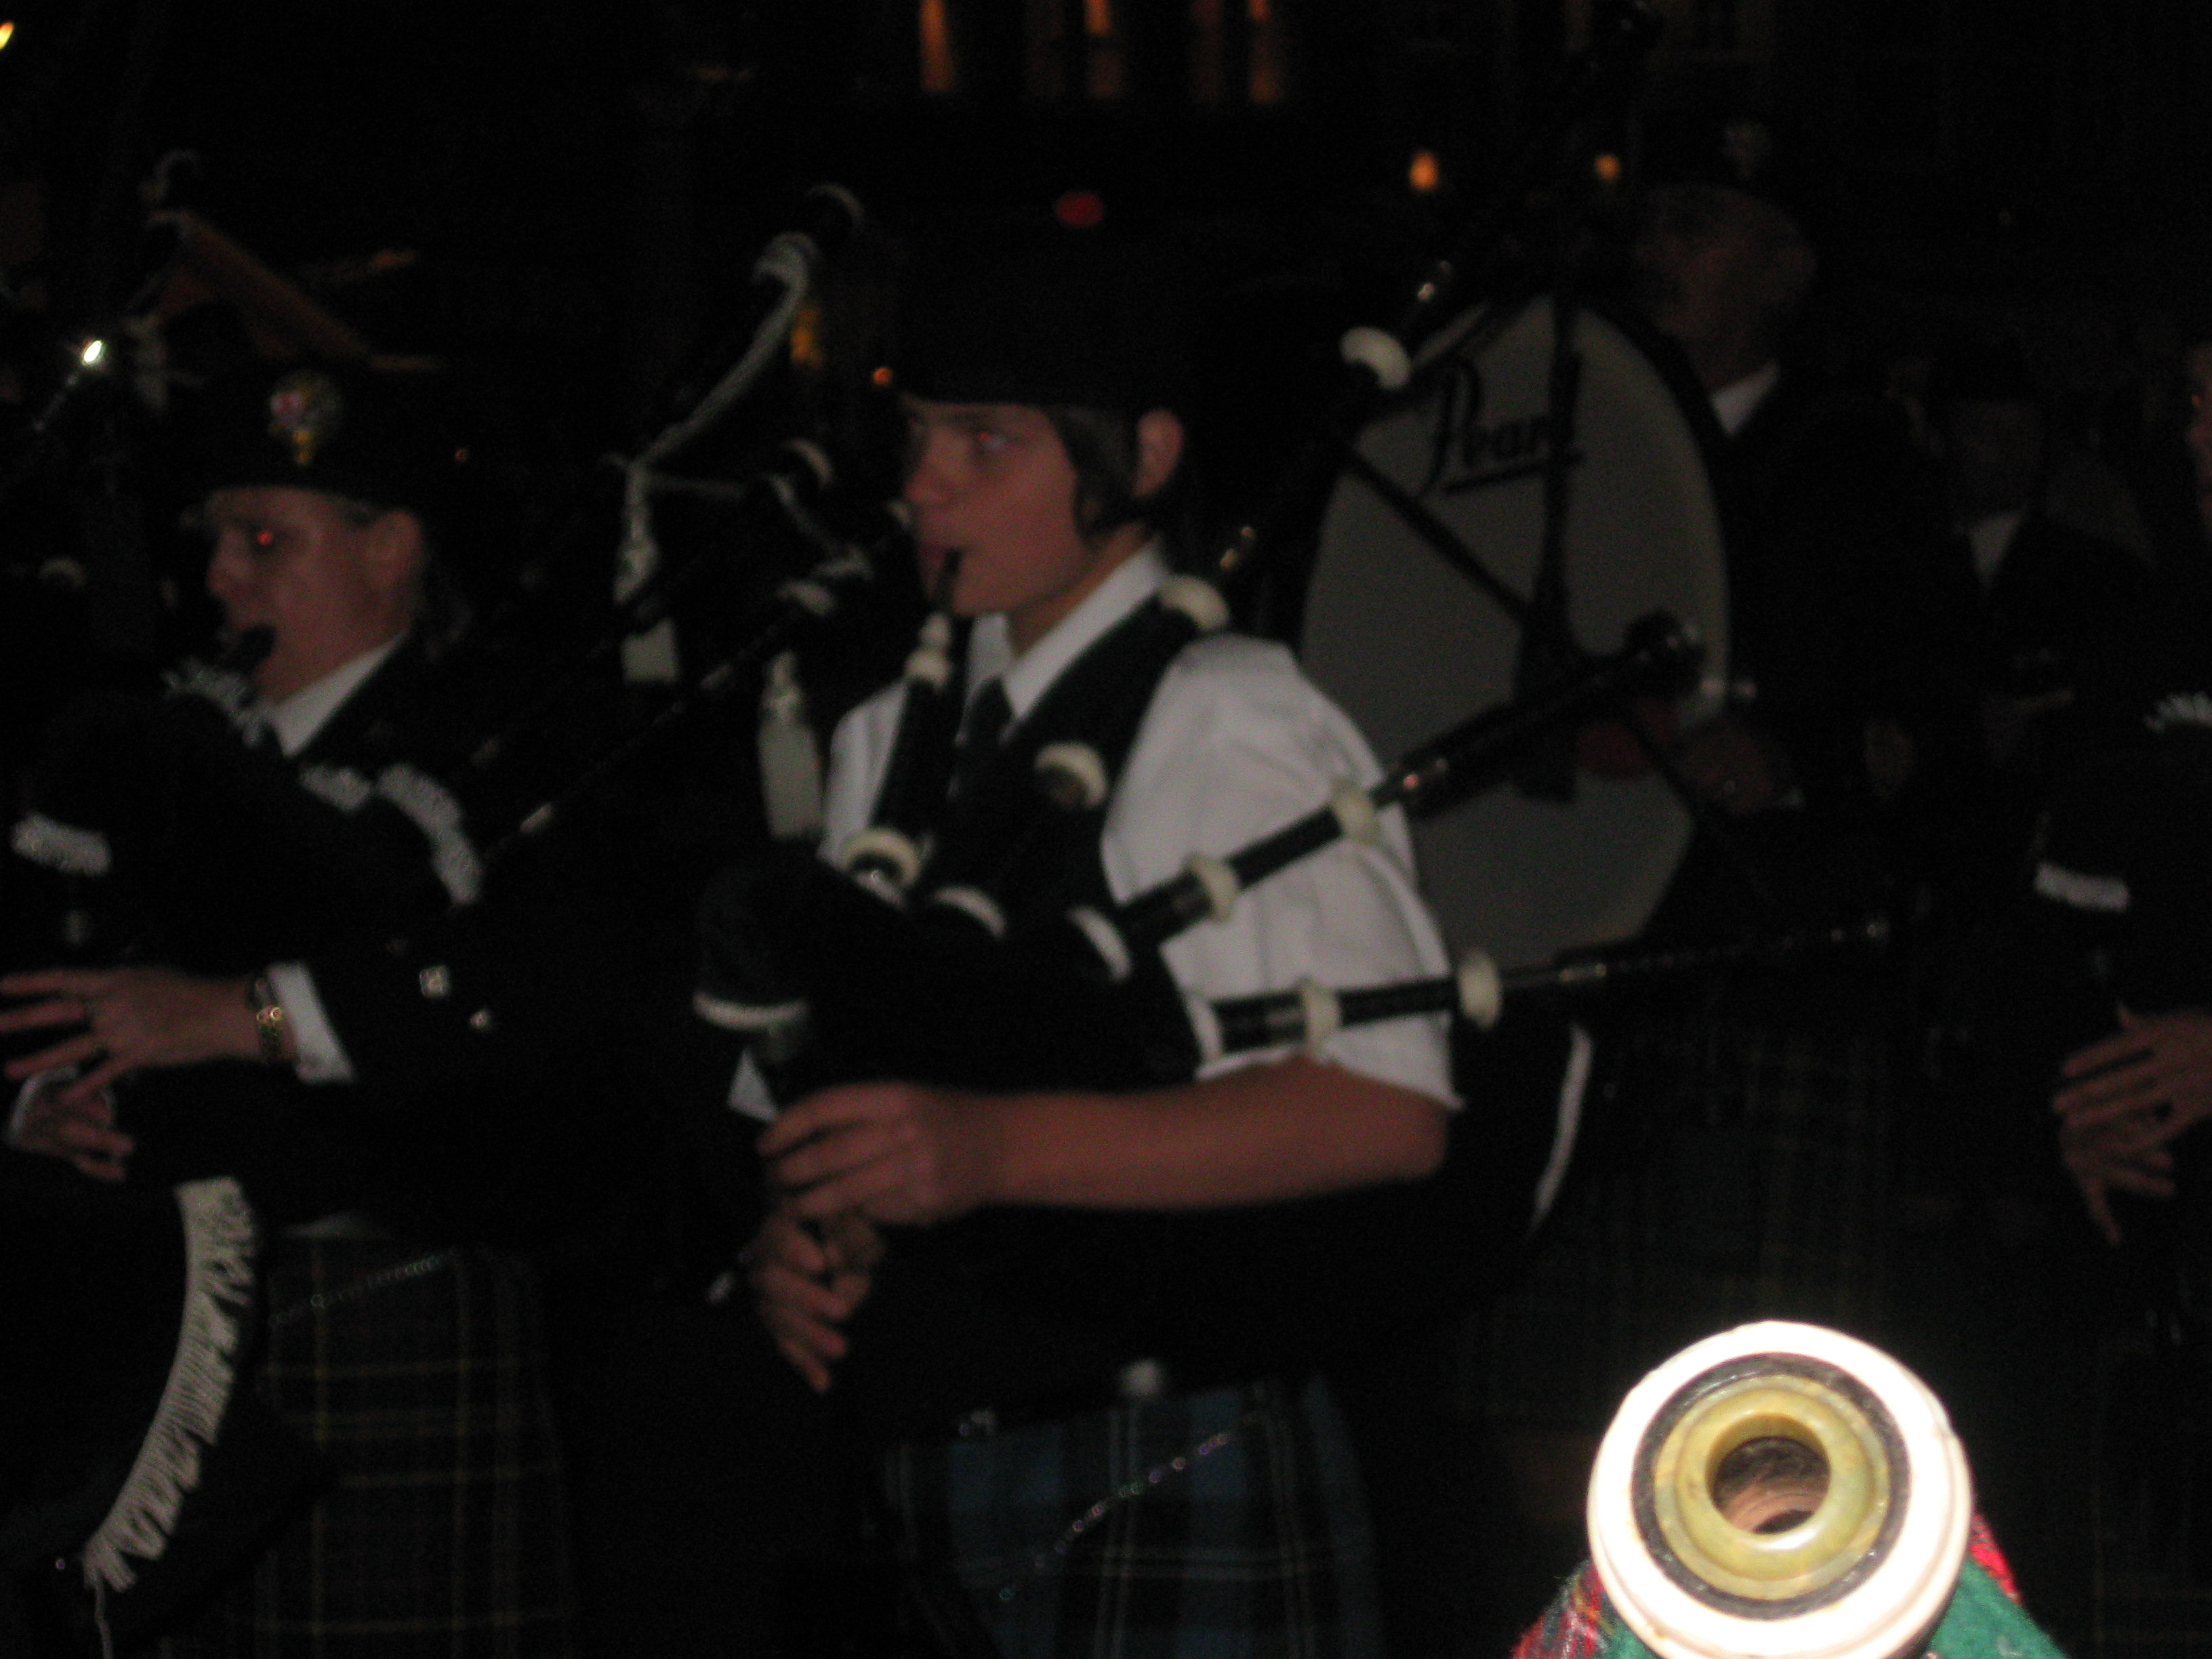 bagpipes 1012011049411050247225048